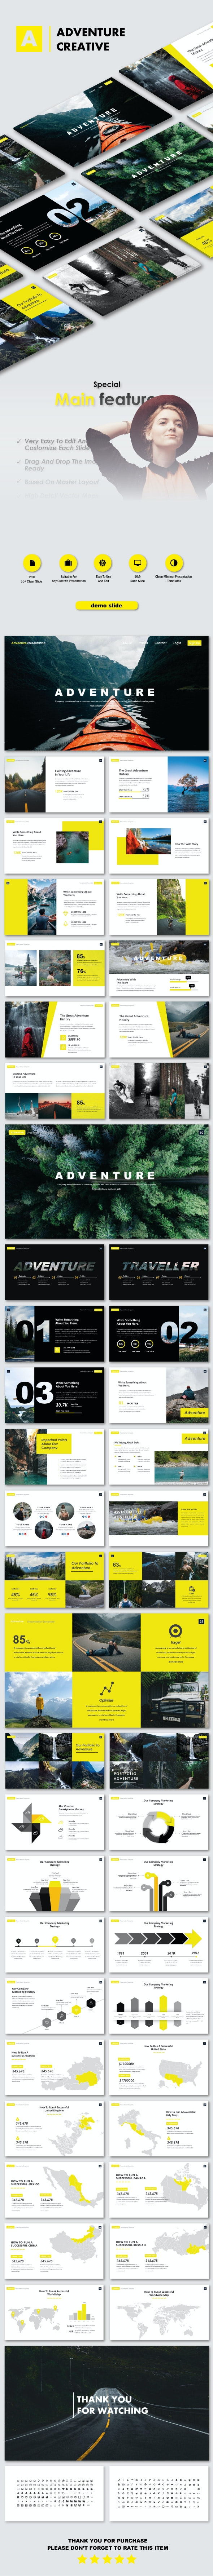 Adventure Creative PowerPoint Templates - Nature PowerPoint Templates